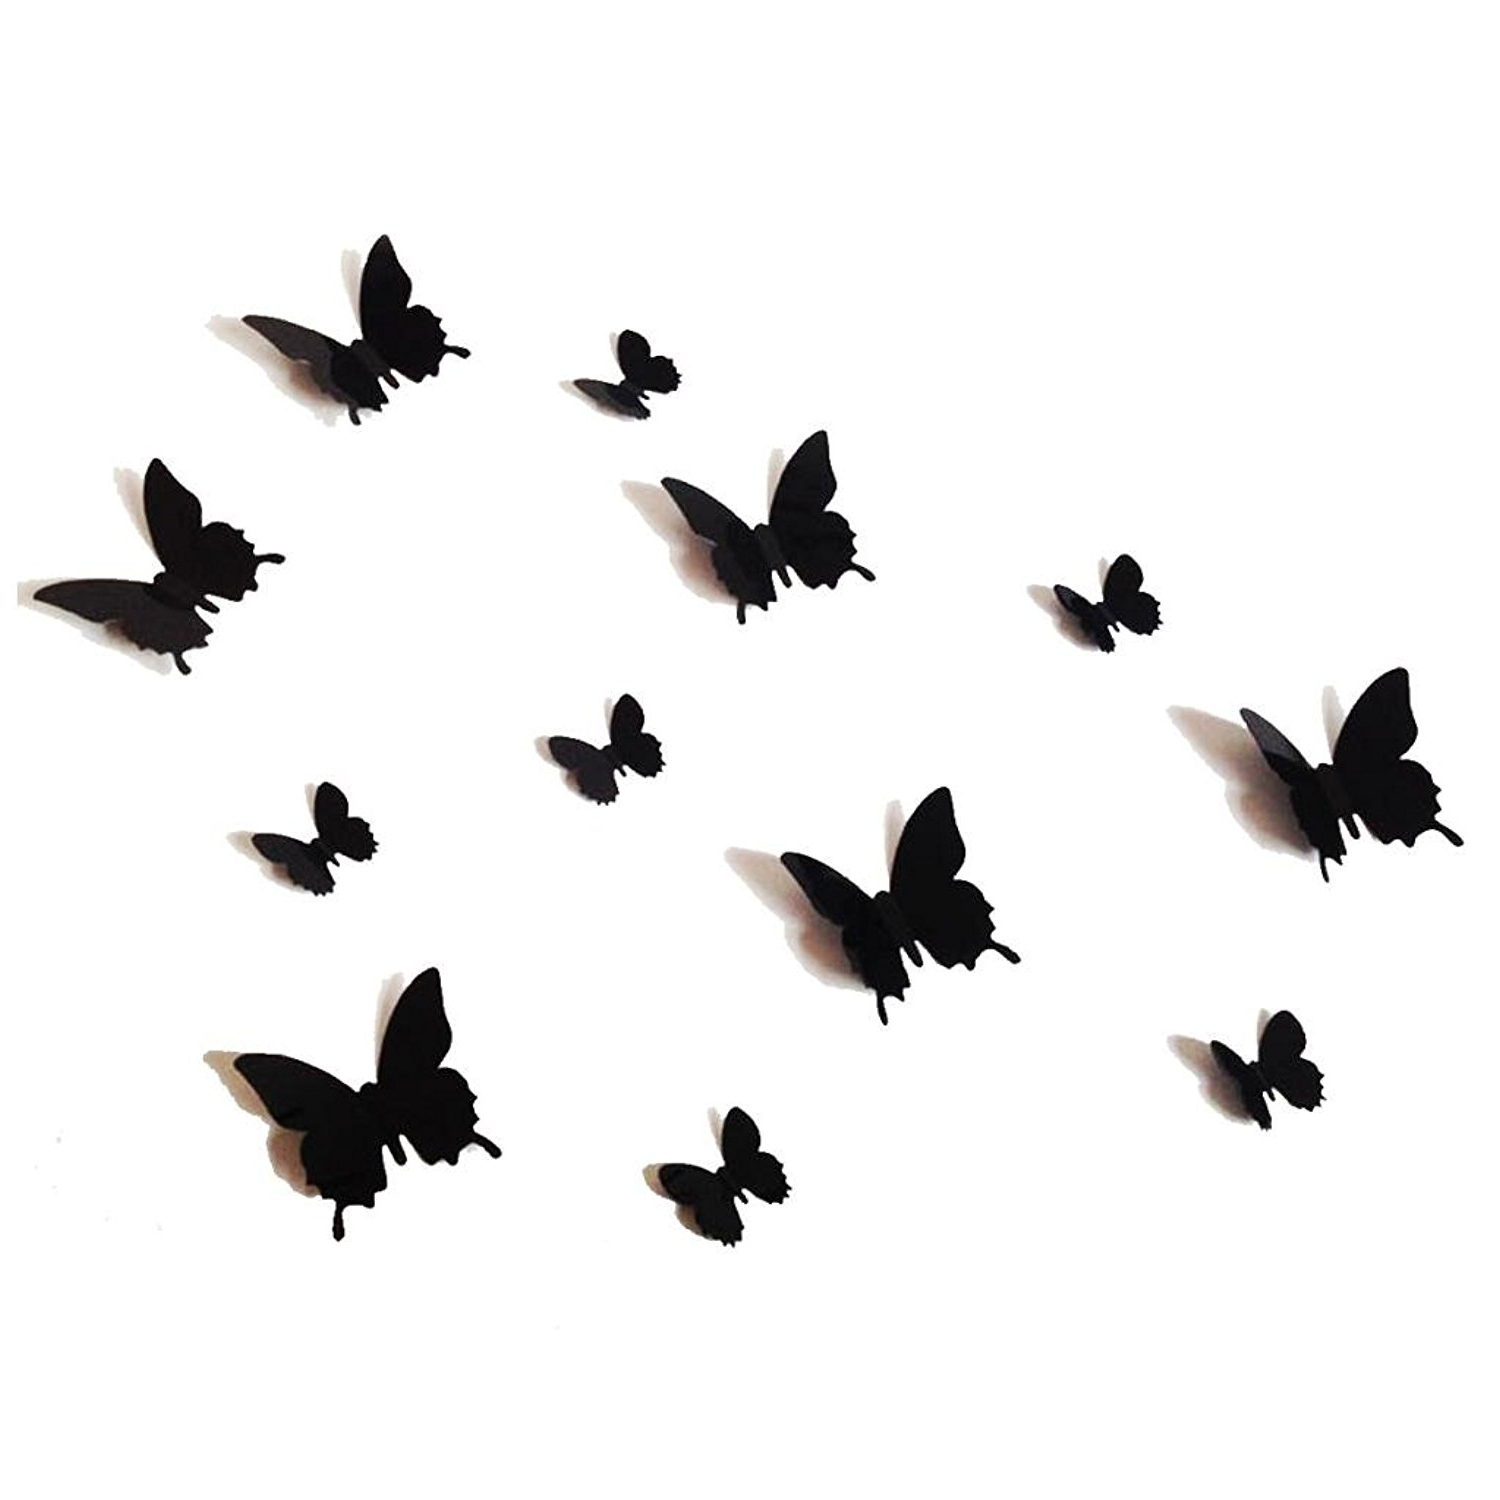 Popular Amazon: 12Pcs 3D Black Butterfly Wall Stickers Art Decal Pvc Throughout 3D Butterfly Wall Art (View 10 of 15)